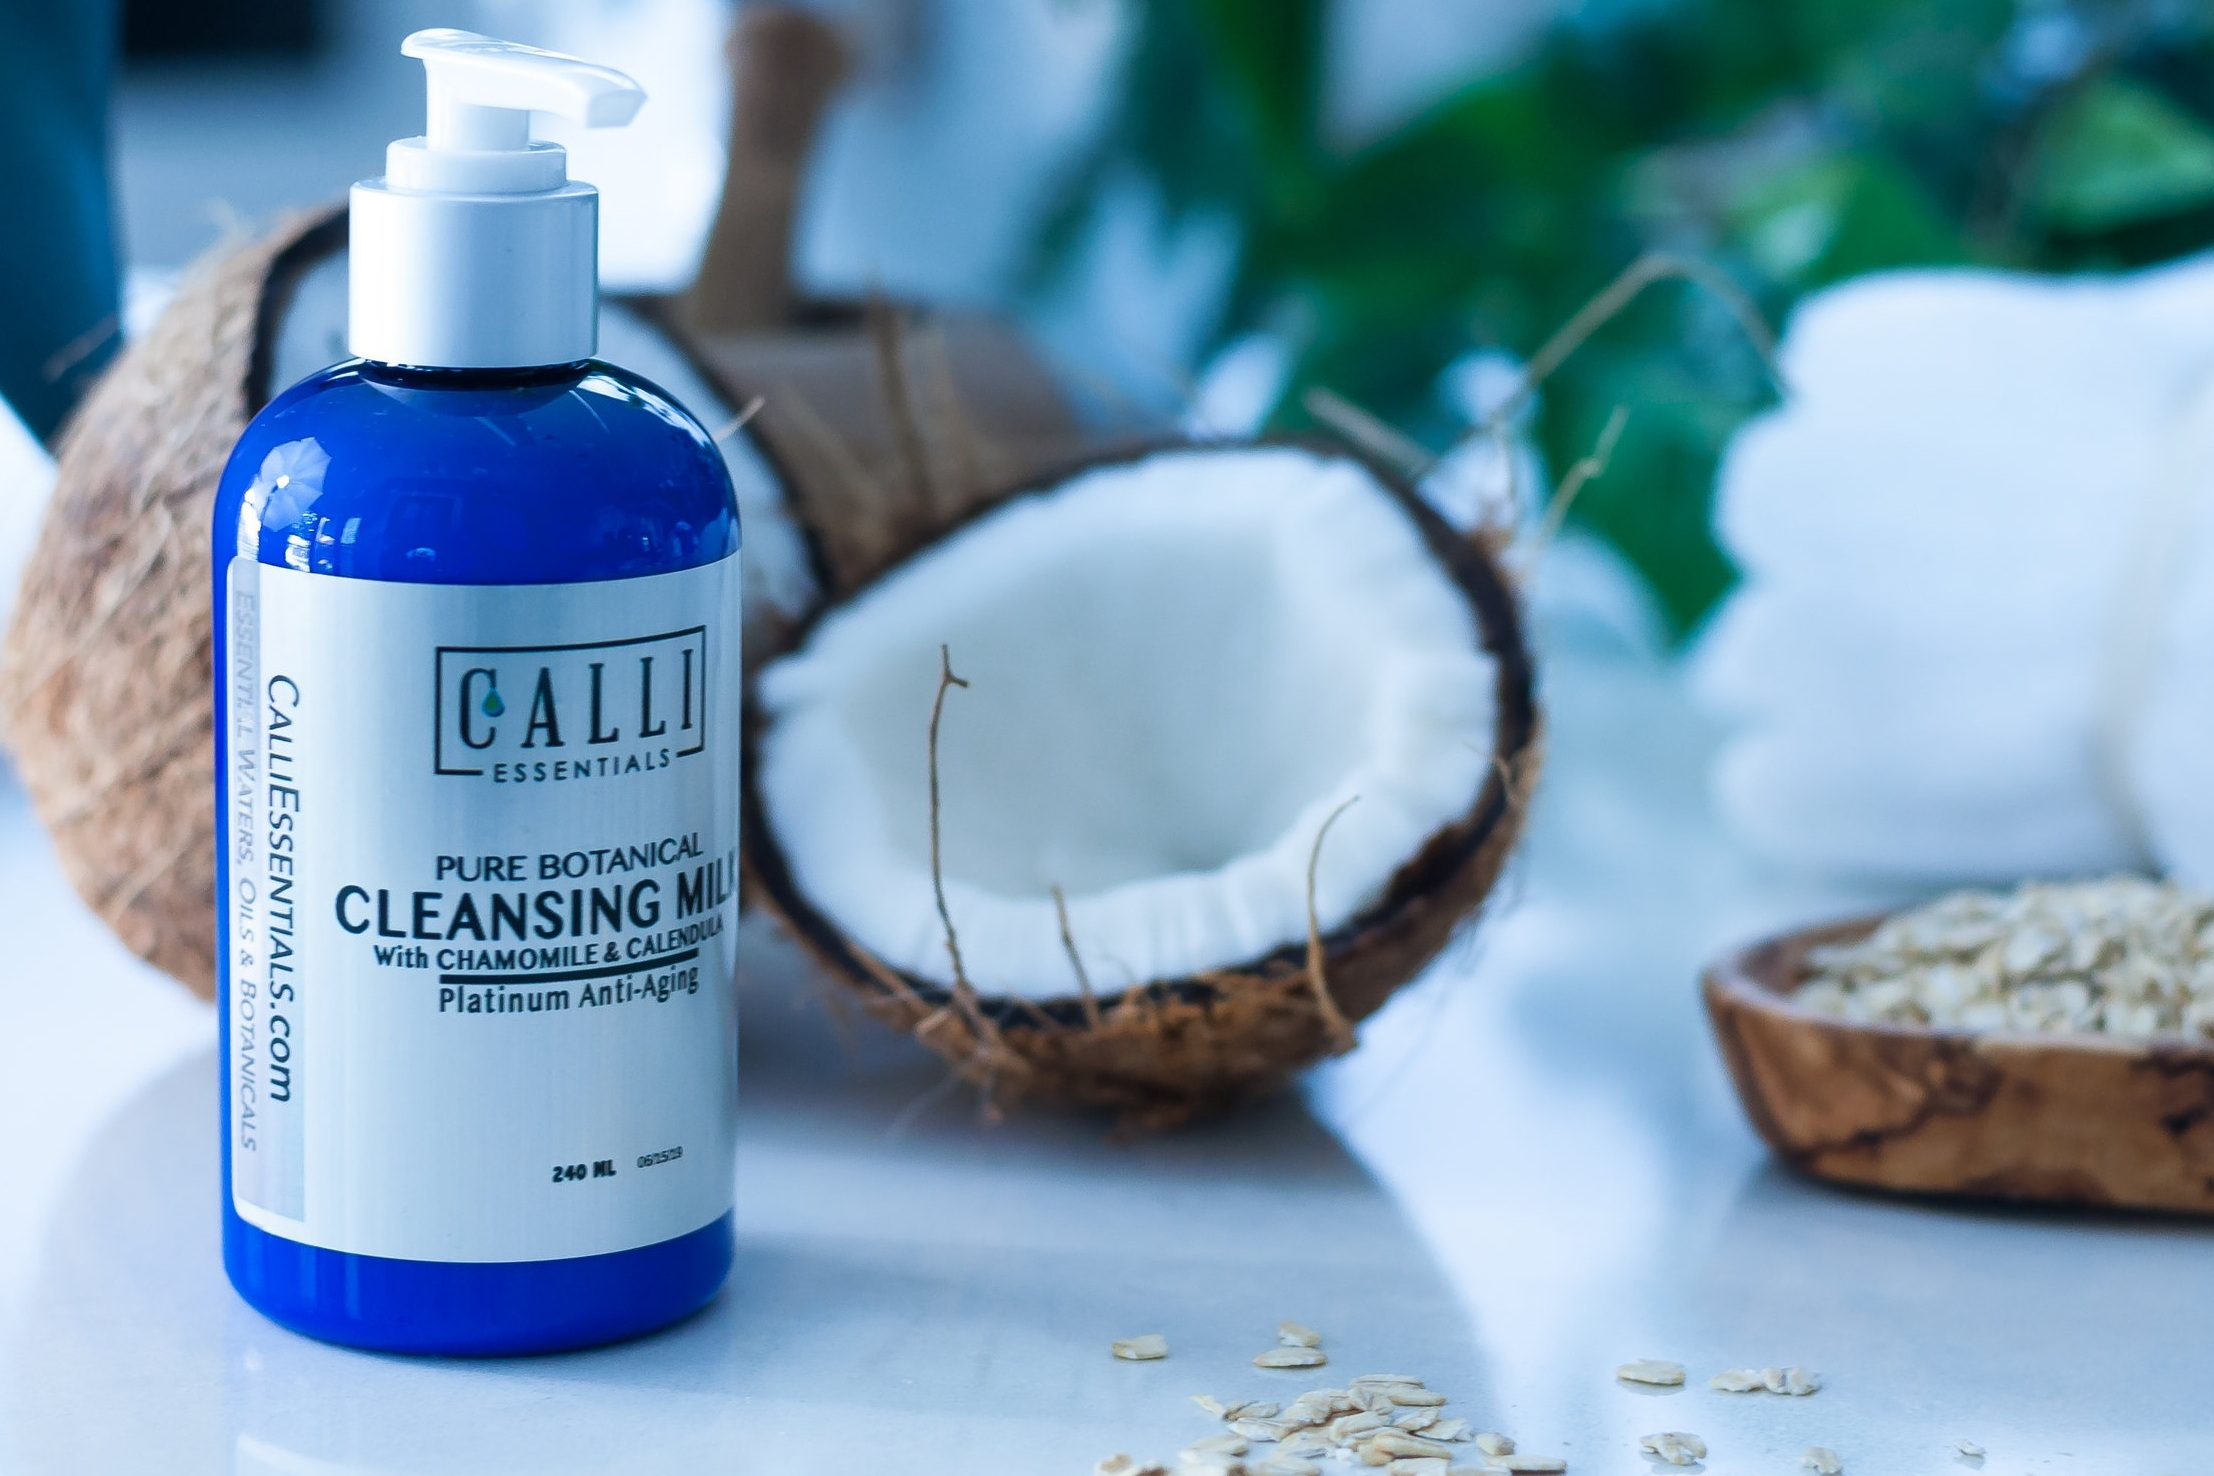 calli essentials -